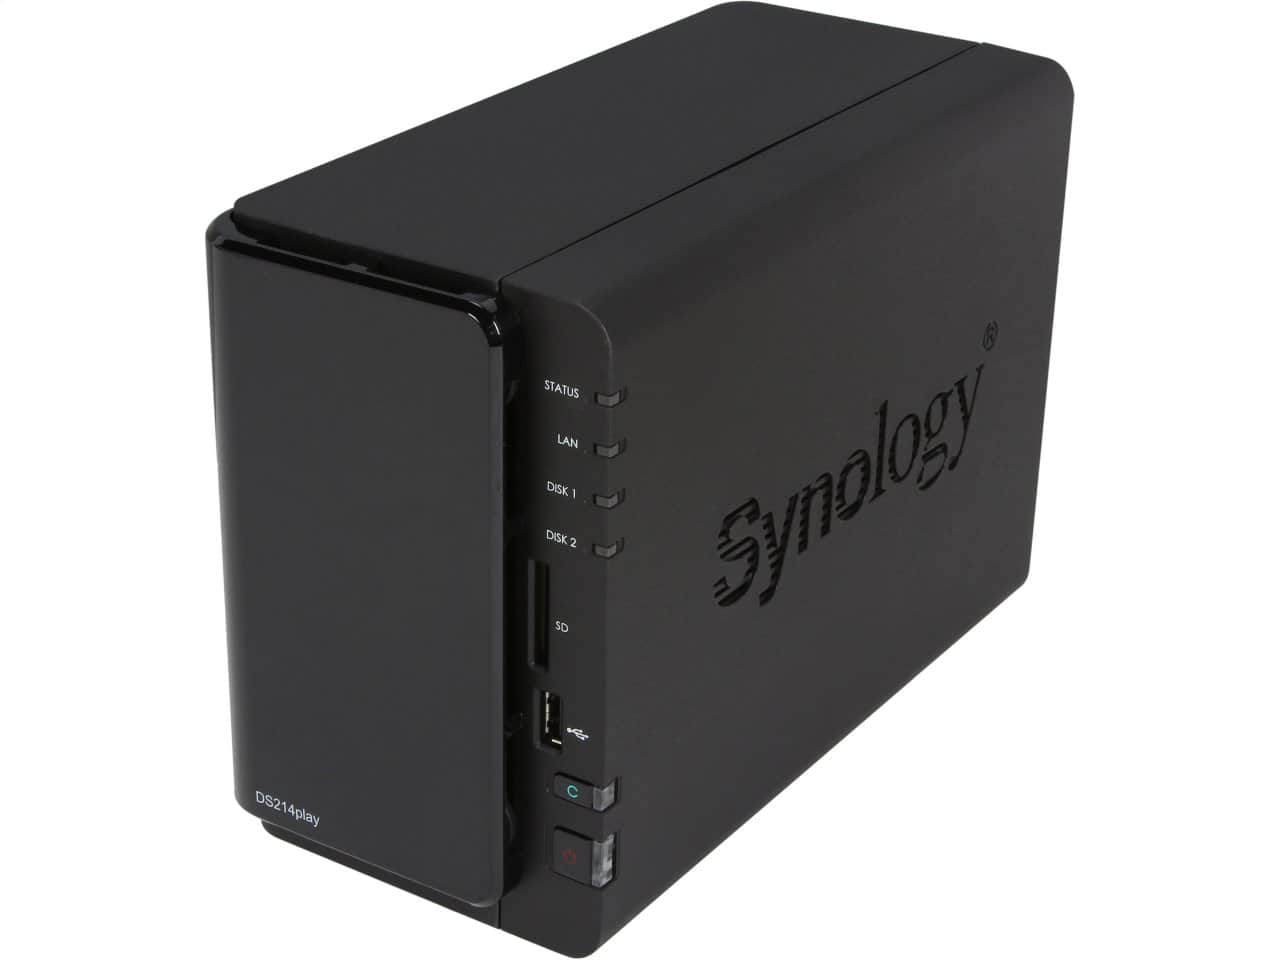 Synology DiskStation DS214play 2-bay NAS $300 or less@Neweggflash